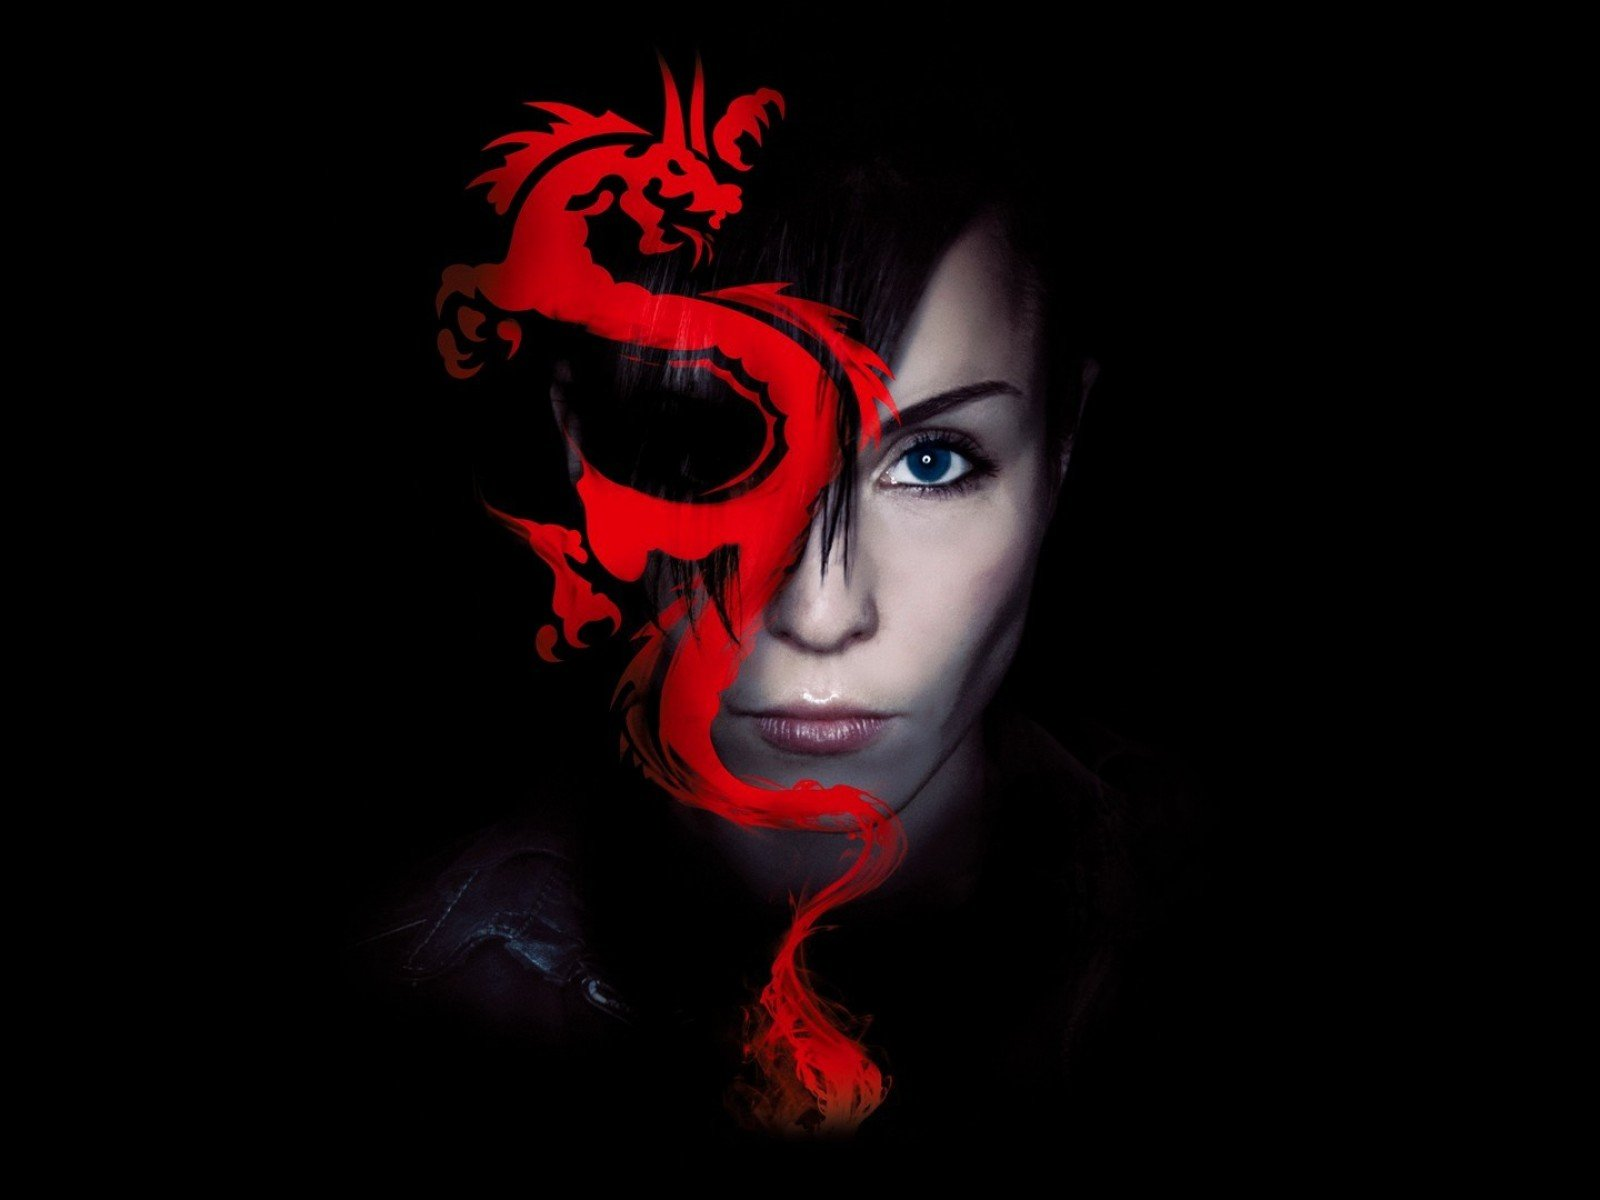 The Girl With The Dragon Tattoo Wallpapers, Pictures, Images